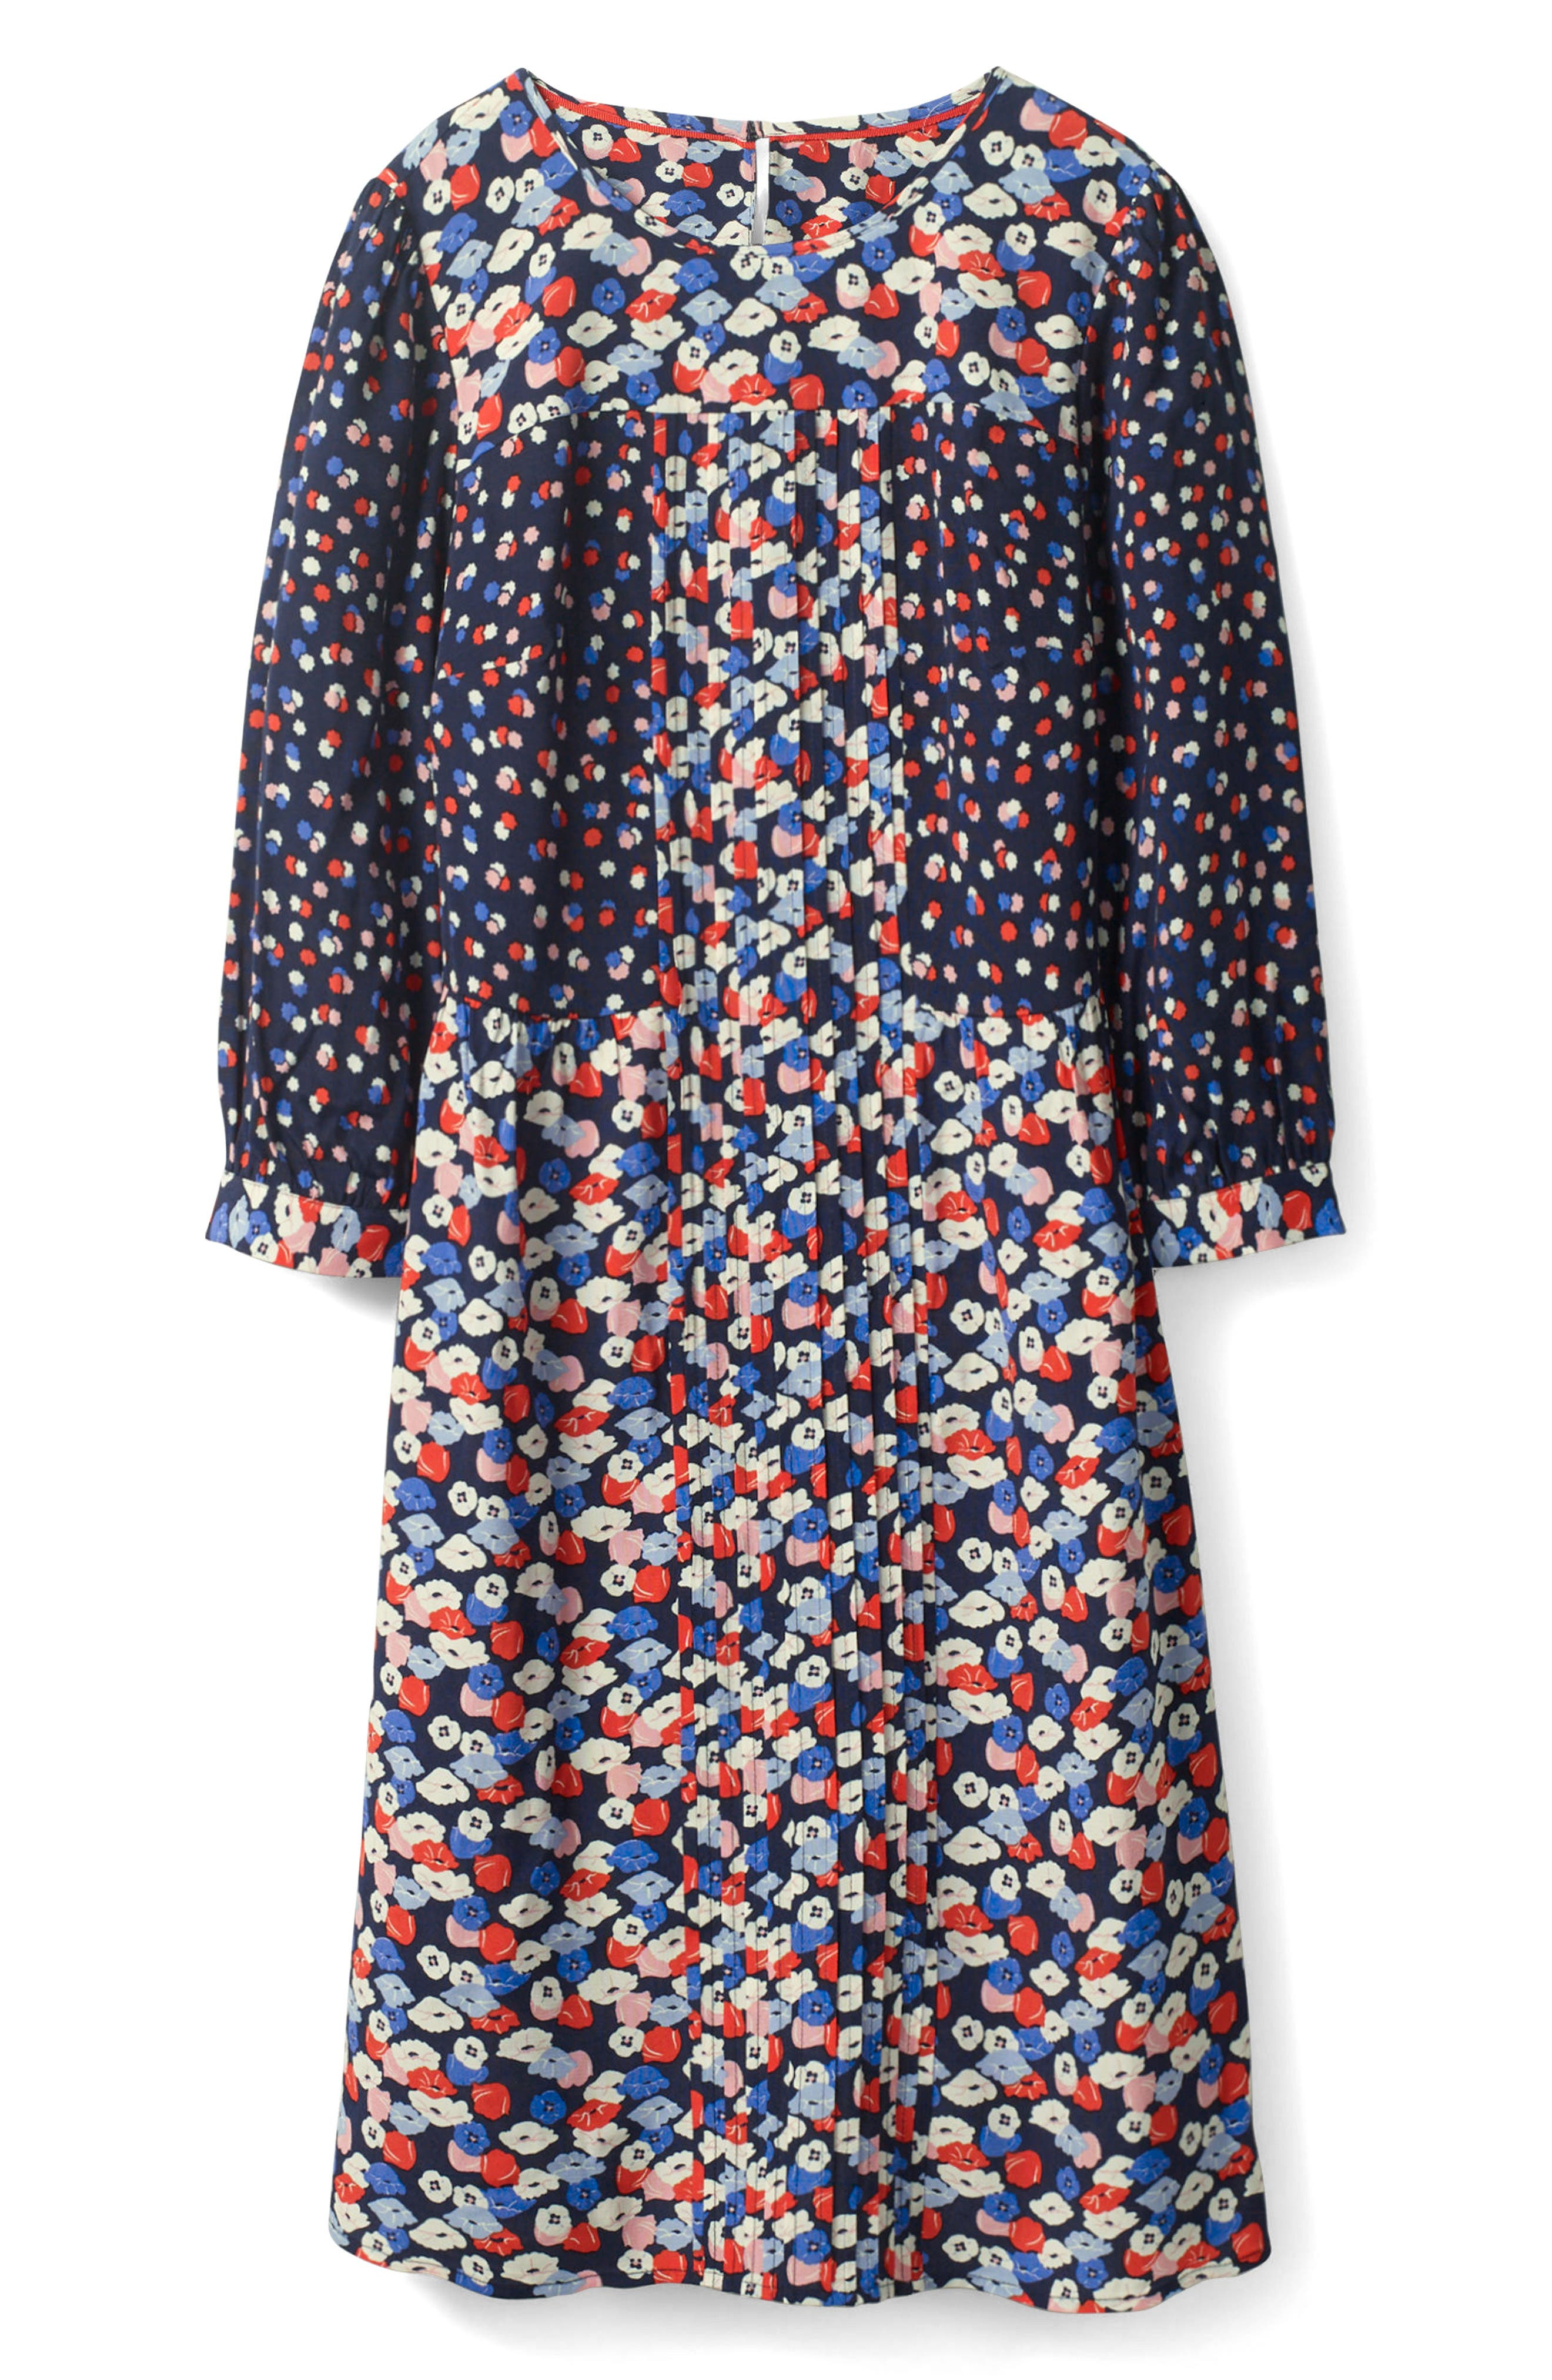 Main Image - Boden Hotchpotch Pattern Mix Pintuck Dress